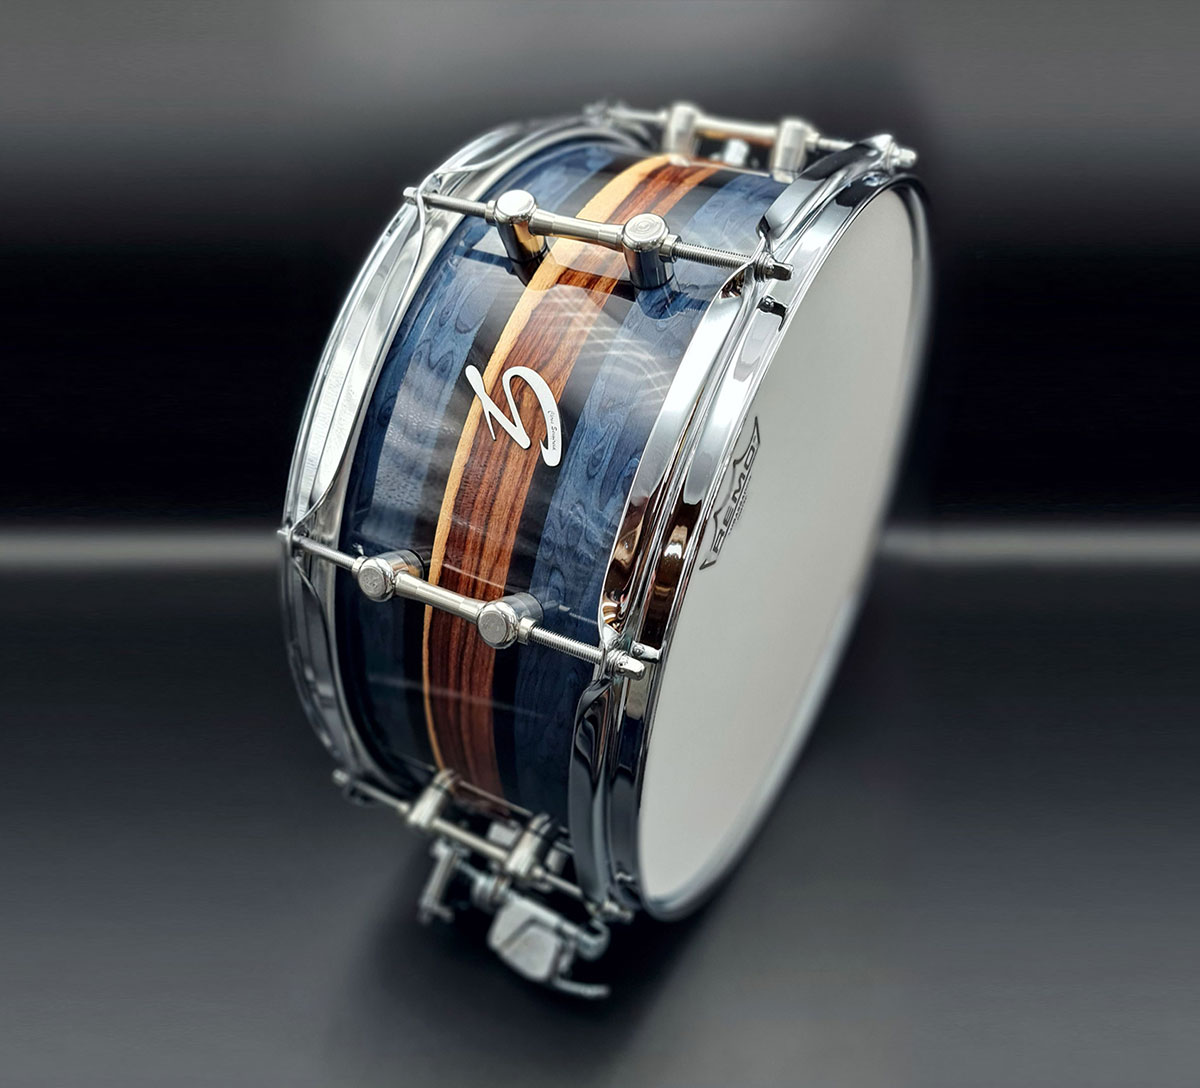 G Series Snare Drum